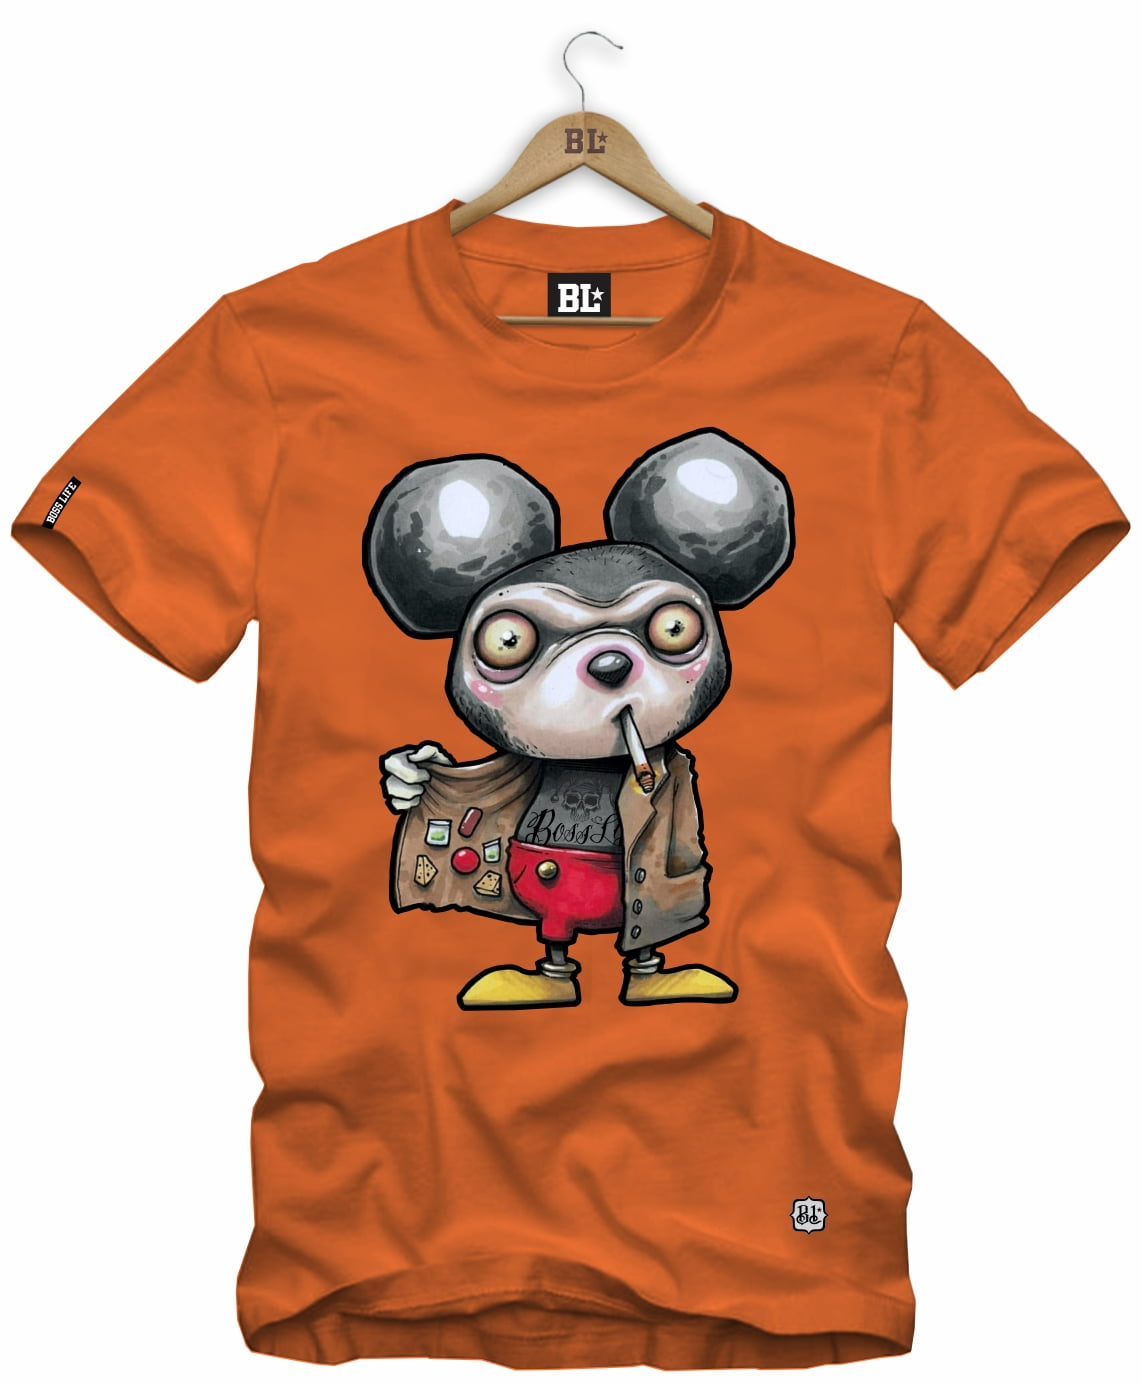 CAMISETA DEALER P AO GG5